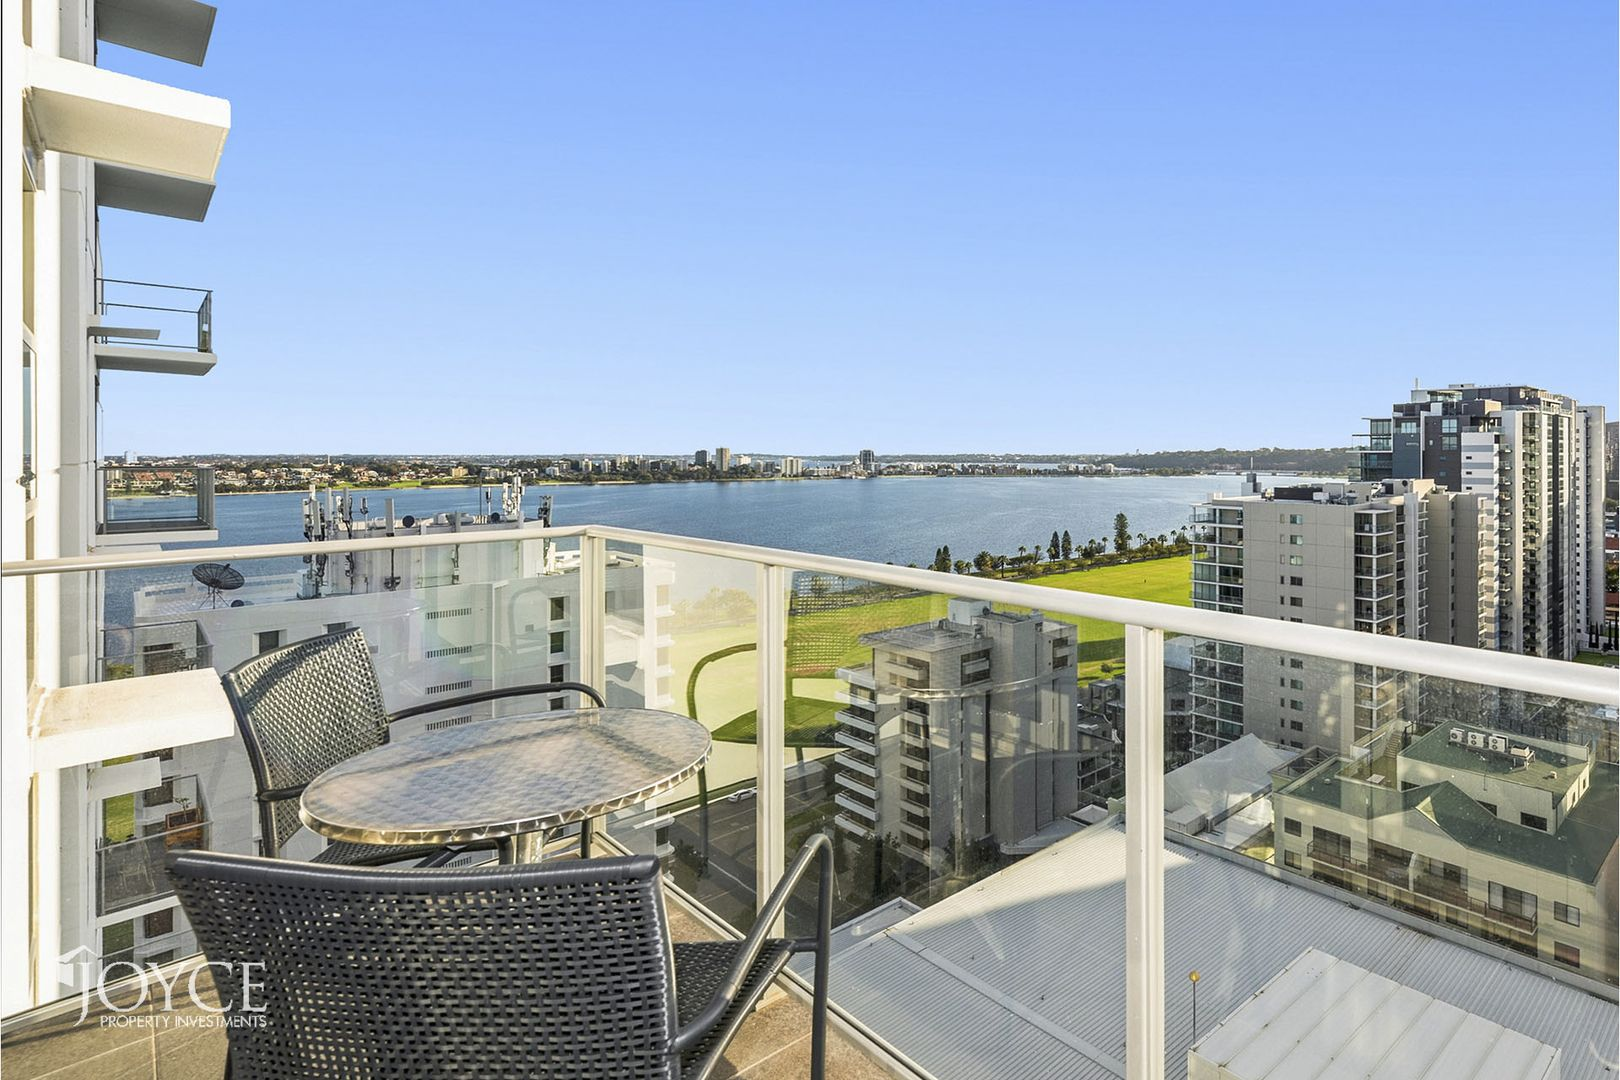 2 bedrooms House in 127/149-151 Adelaide Terrace EAST PERTH WA, 6004